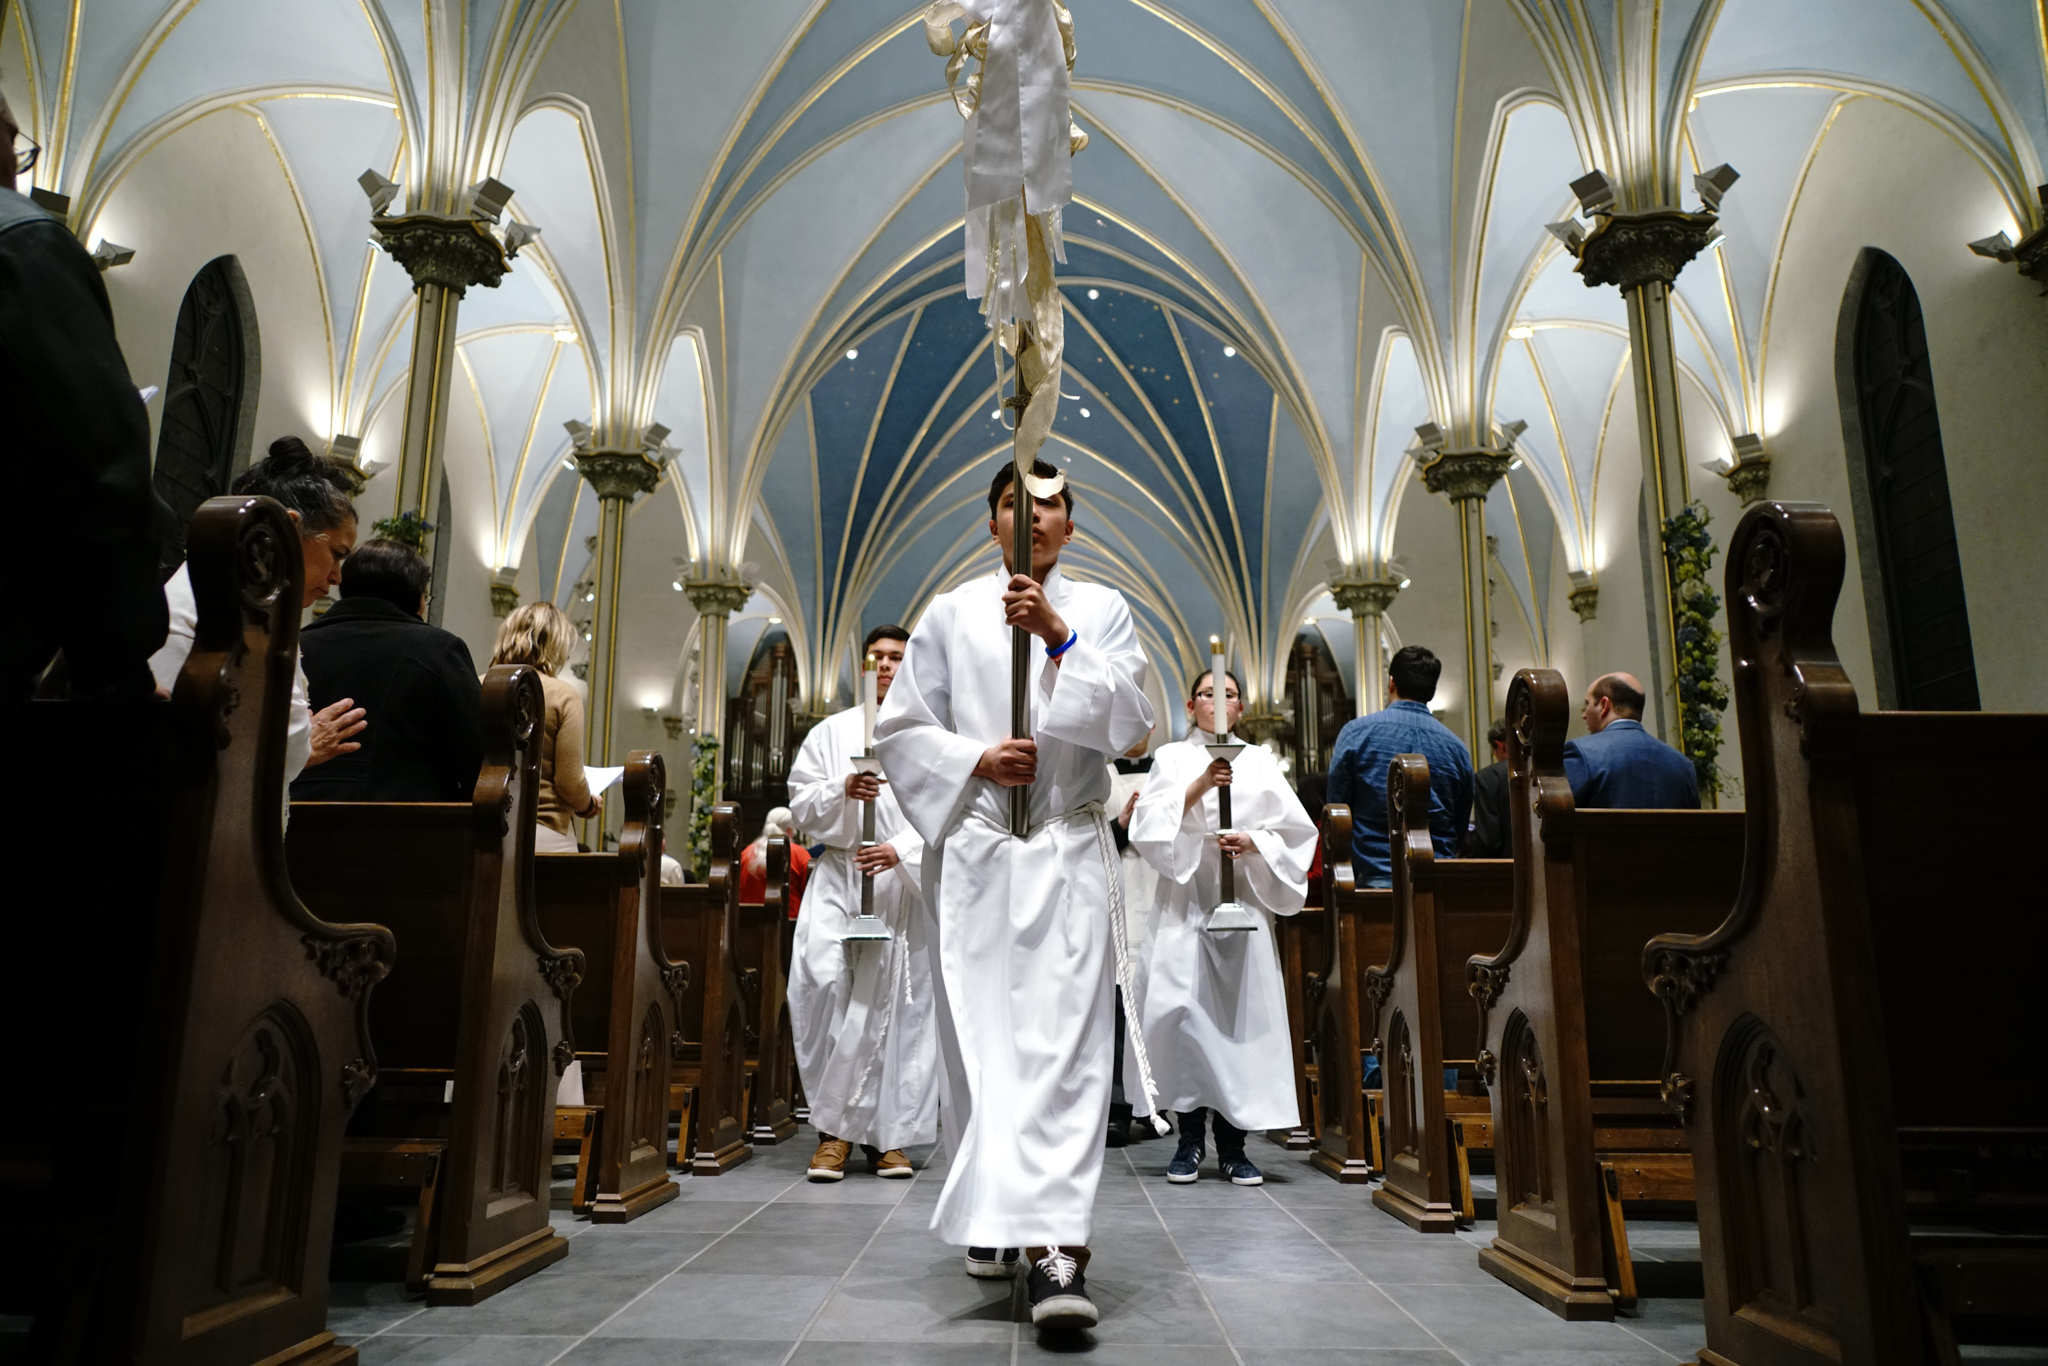 Altar servers recess out of the Cathedral after the Easter Vigil Mass.